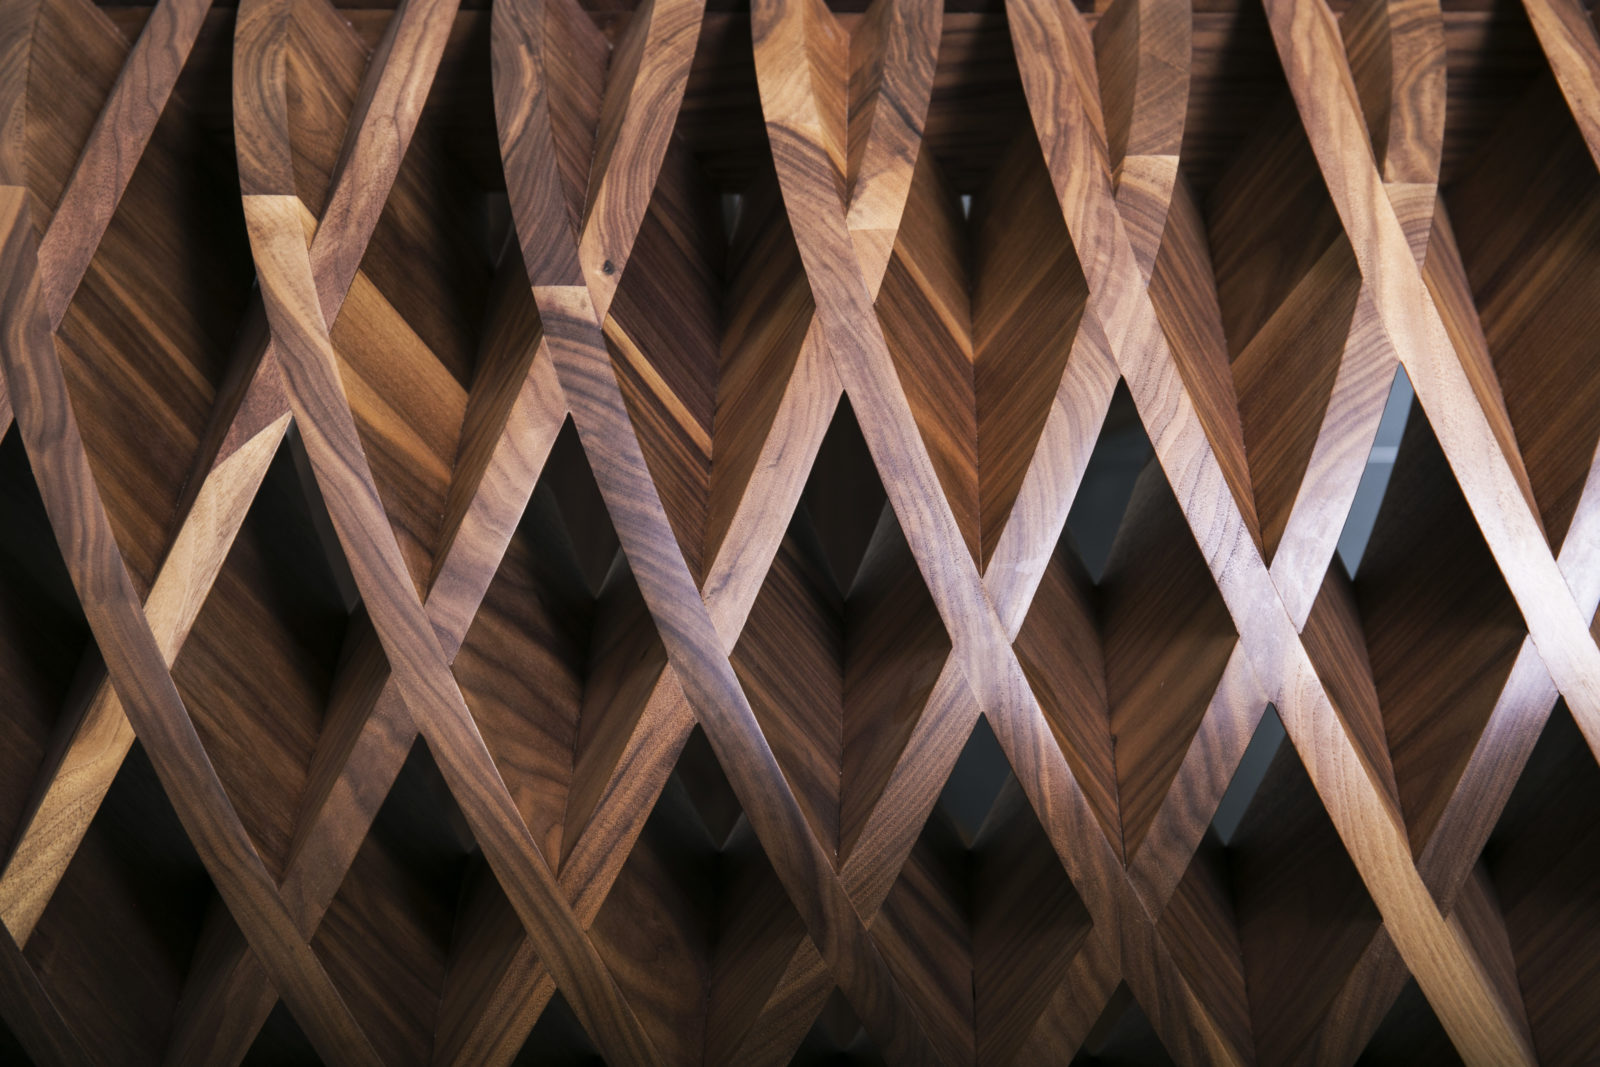 Curved solid walnut criss cross pattern close up